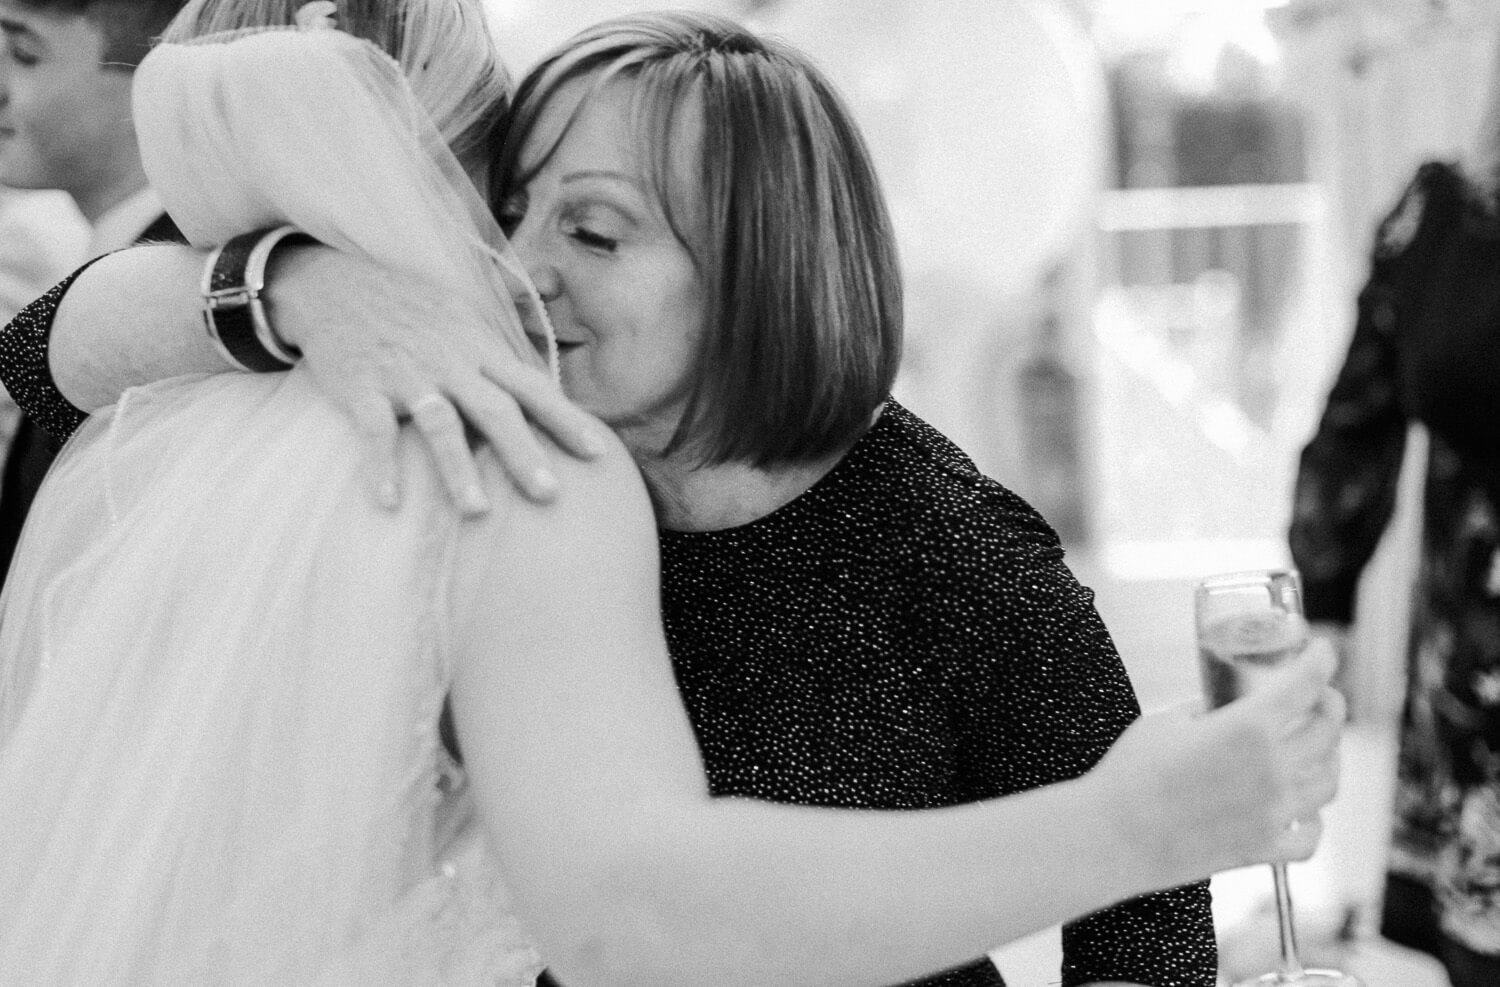 Lady hugging bride on wedding day suddenly hugs and kisses become weapons